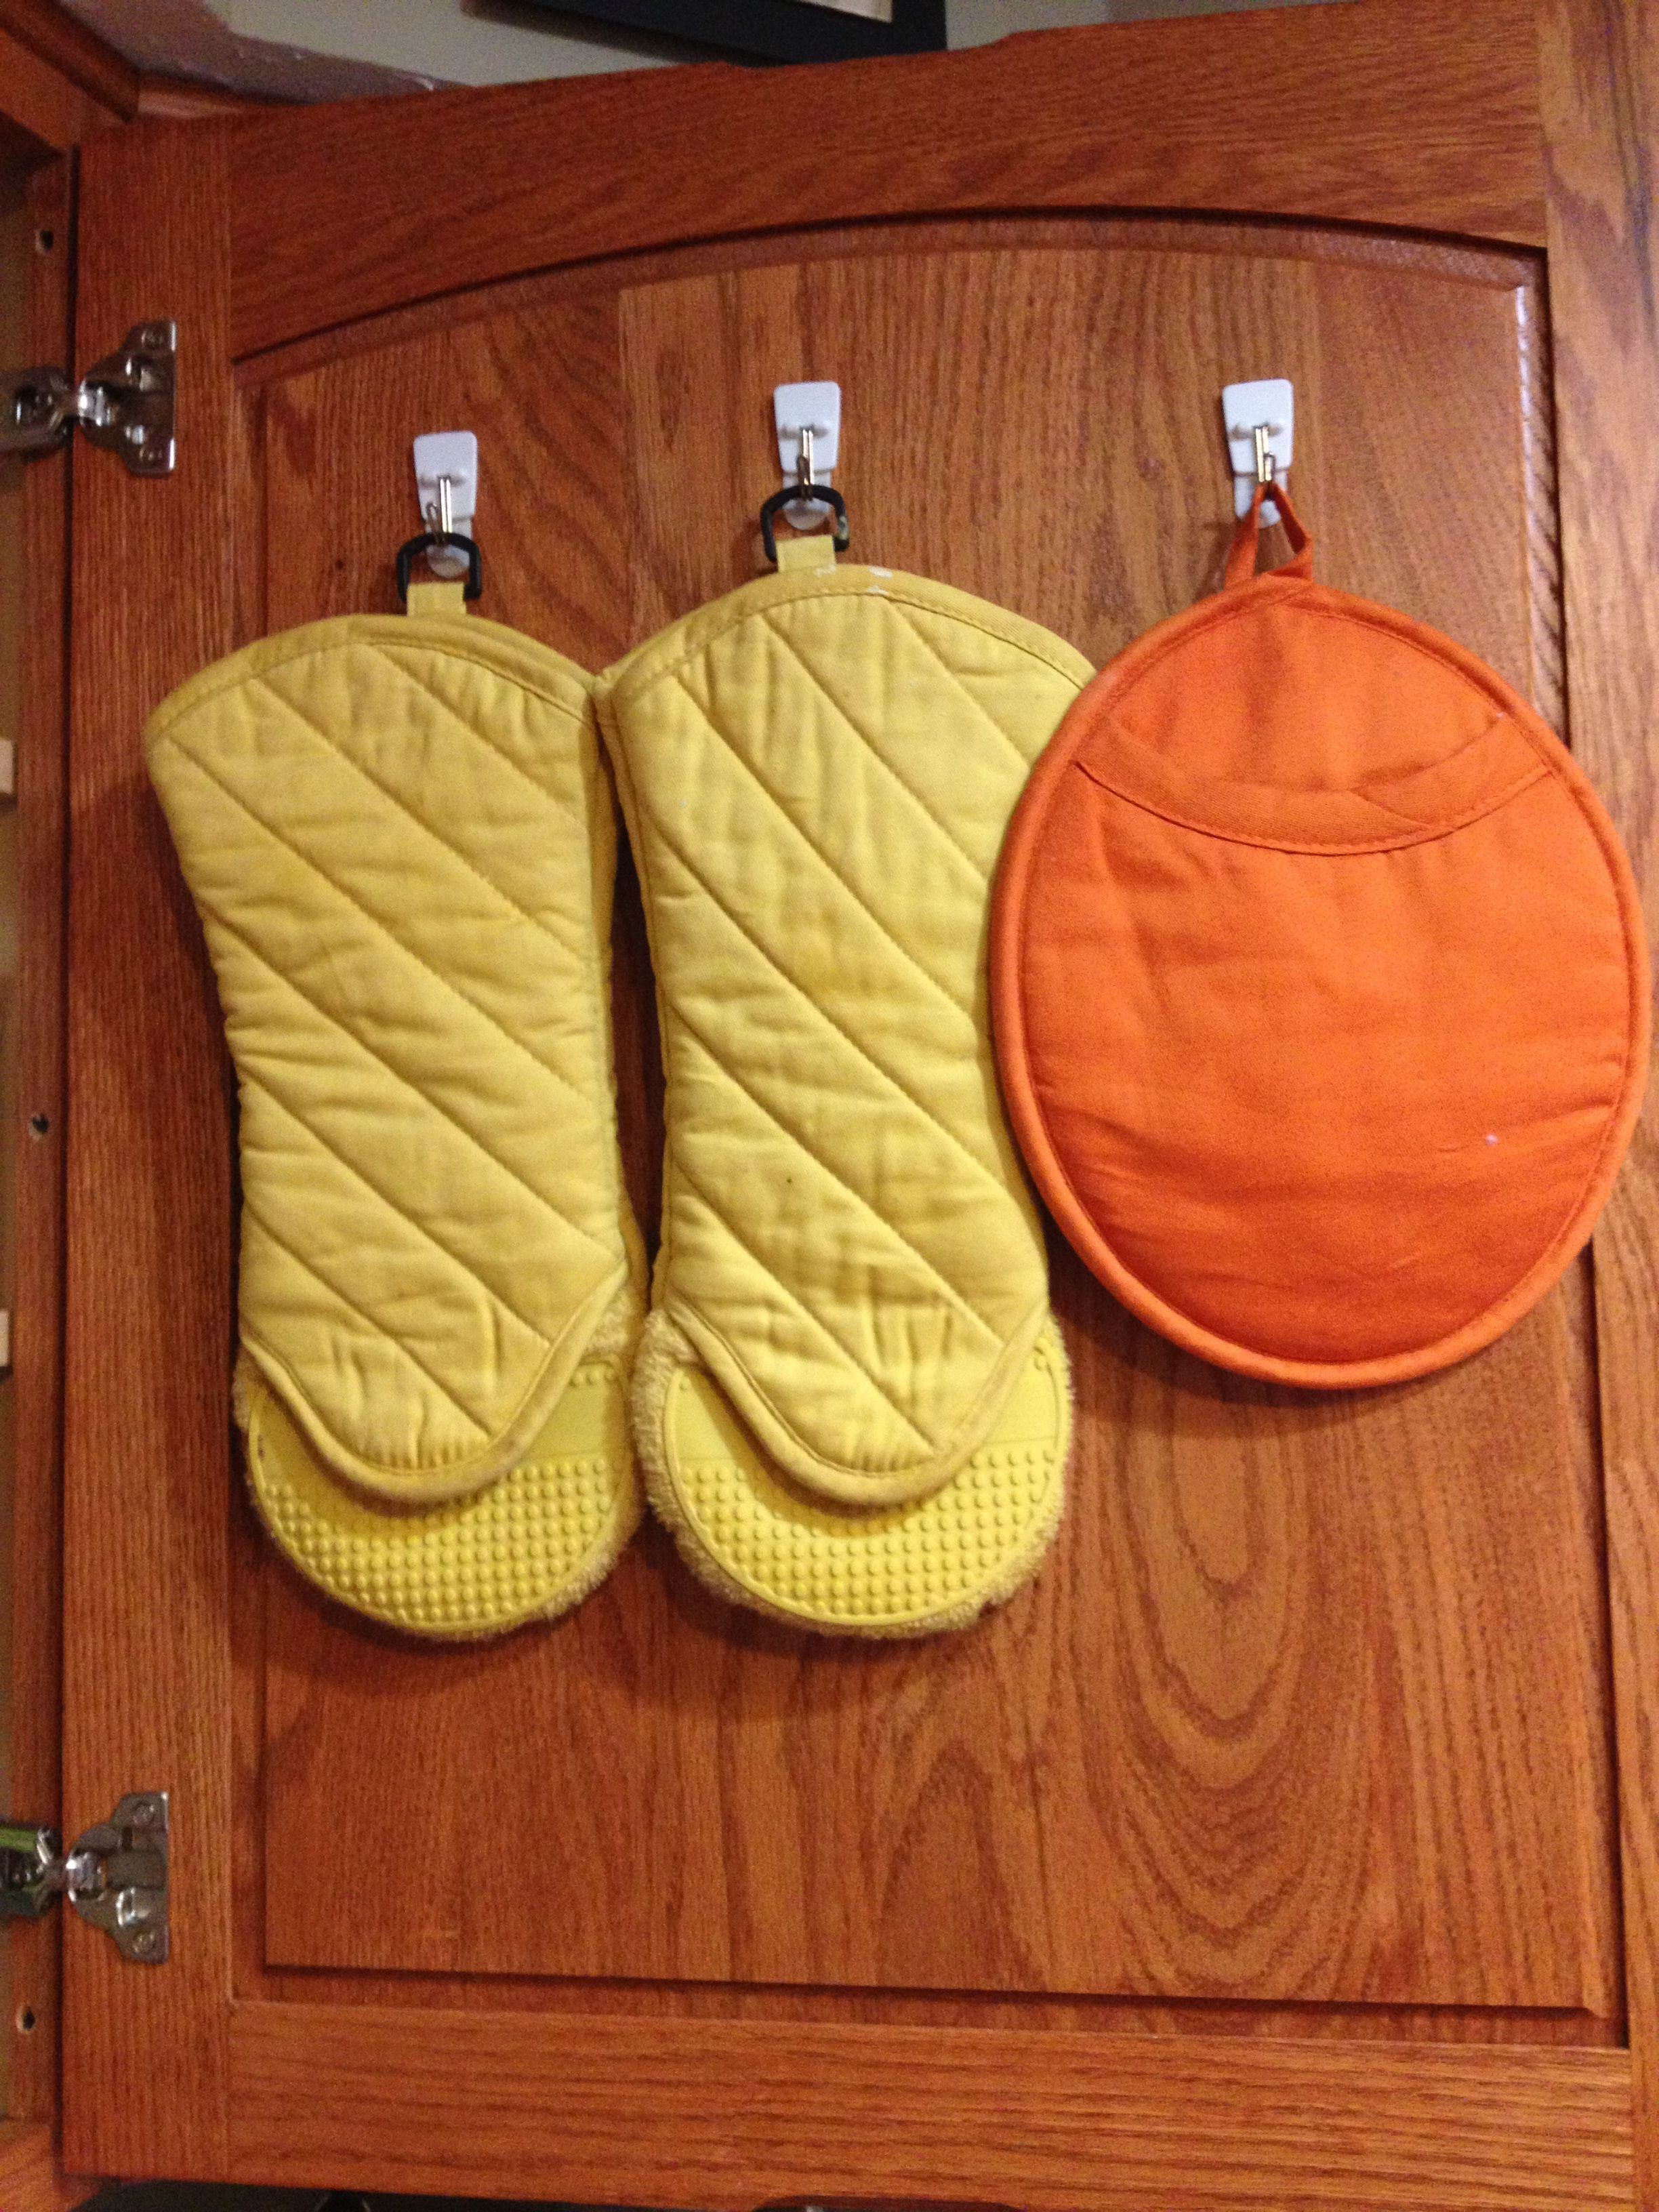 Use Command Hooks To Hang Oven Mitts Inside Your Kitchen